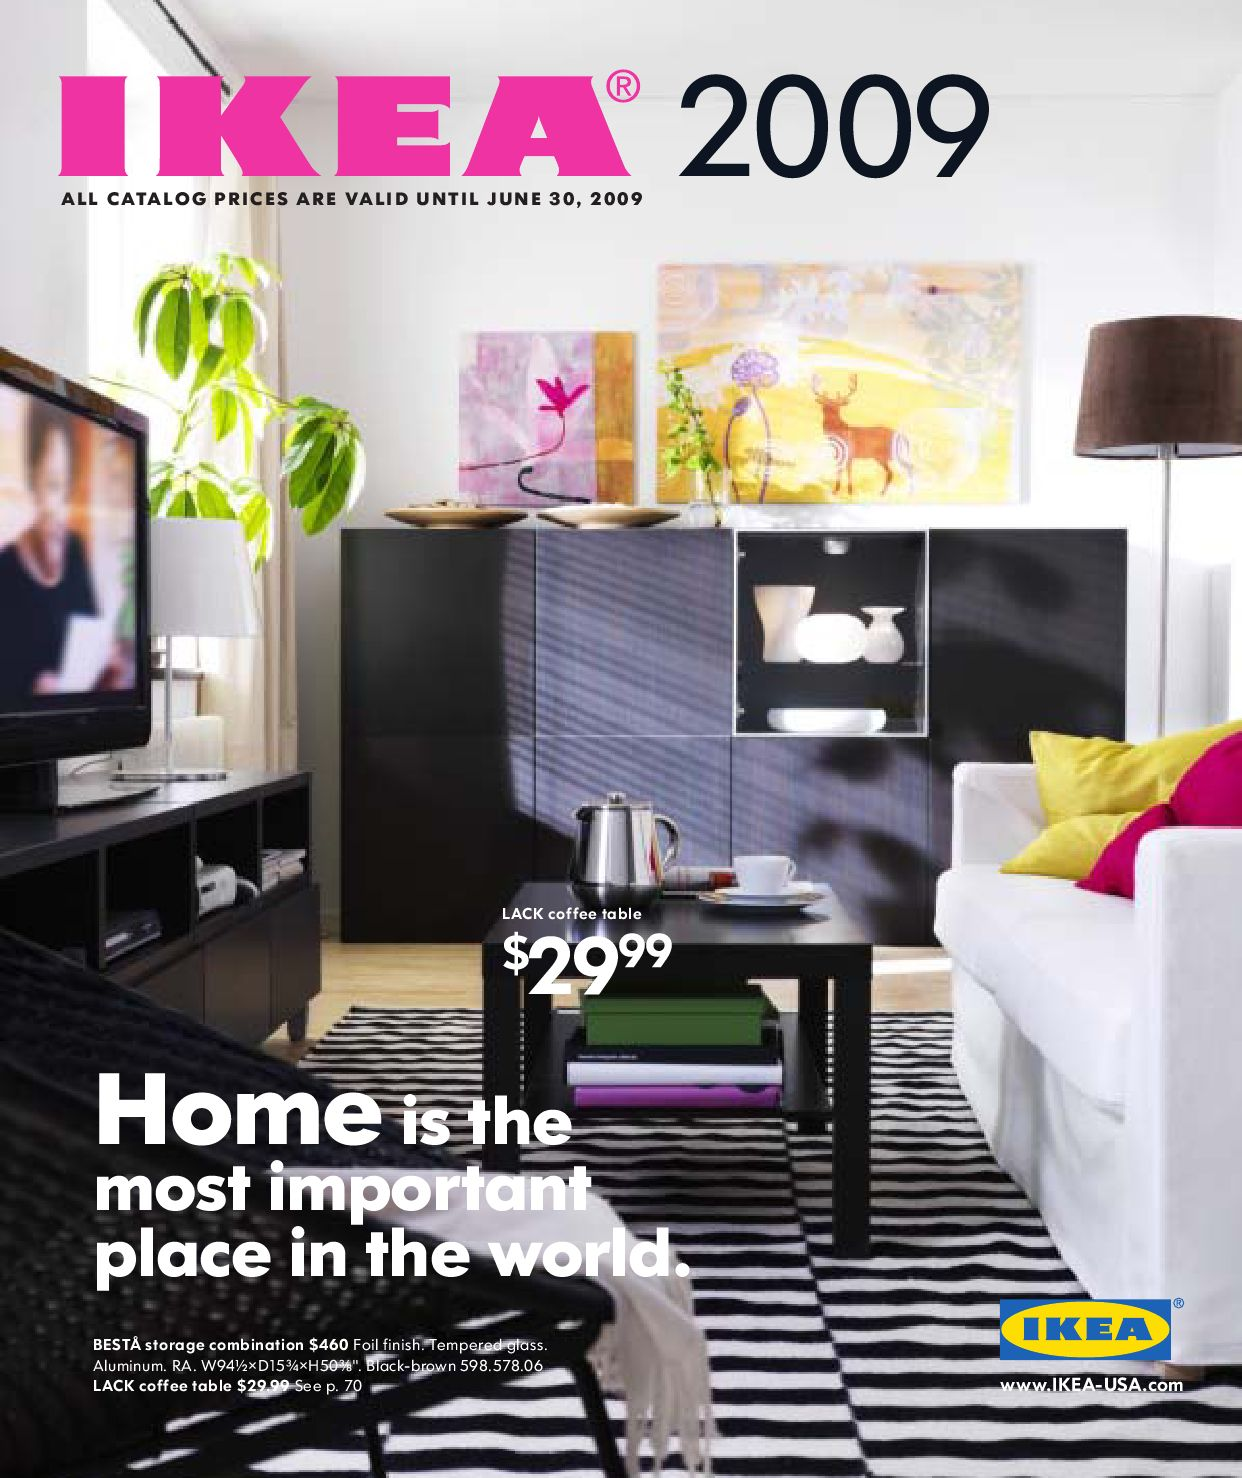 Kivik Sofa Pdf Ikea 2009 Catalogue By Muhammad Mansour Issuu